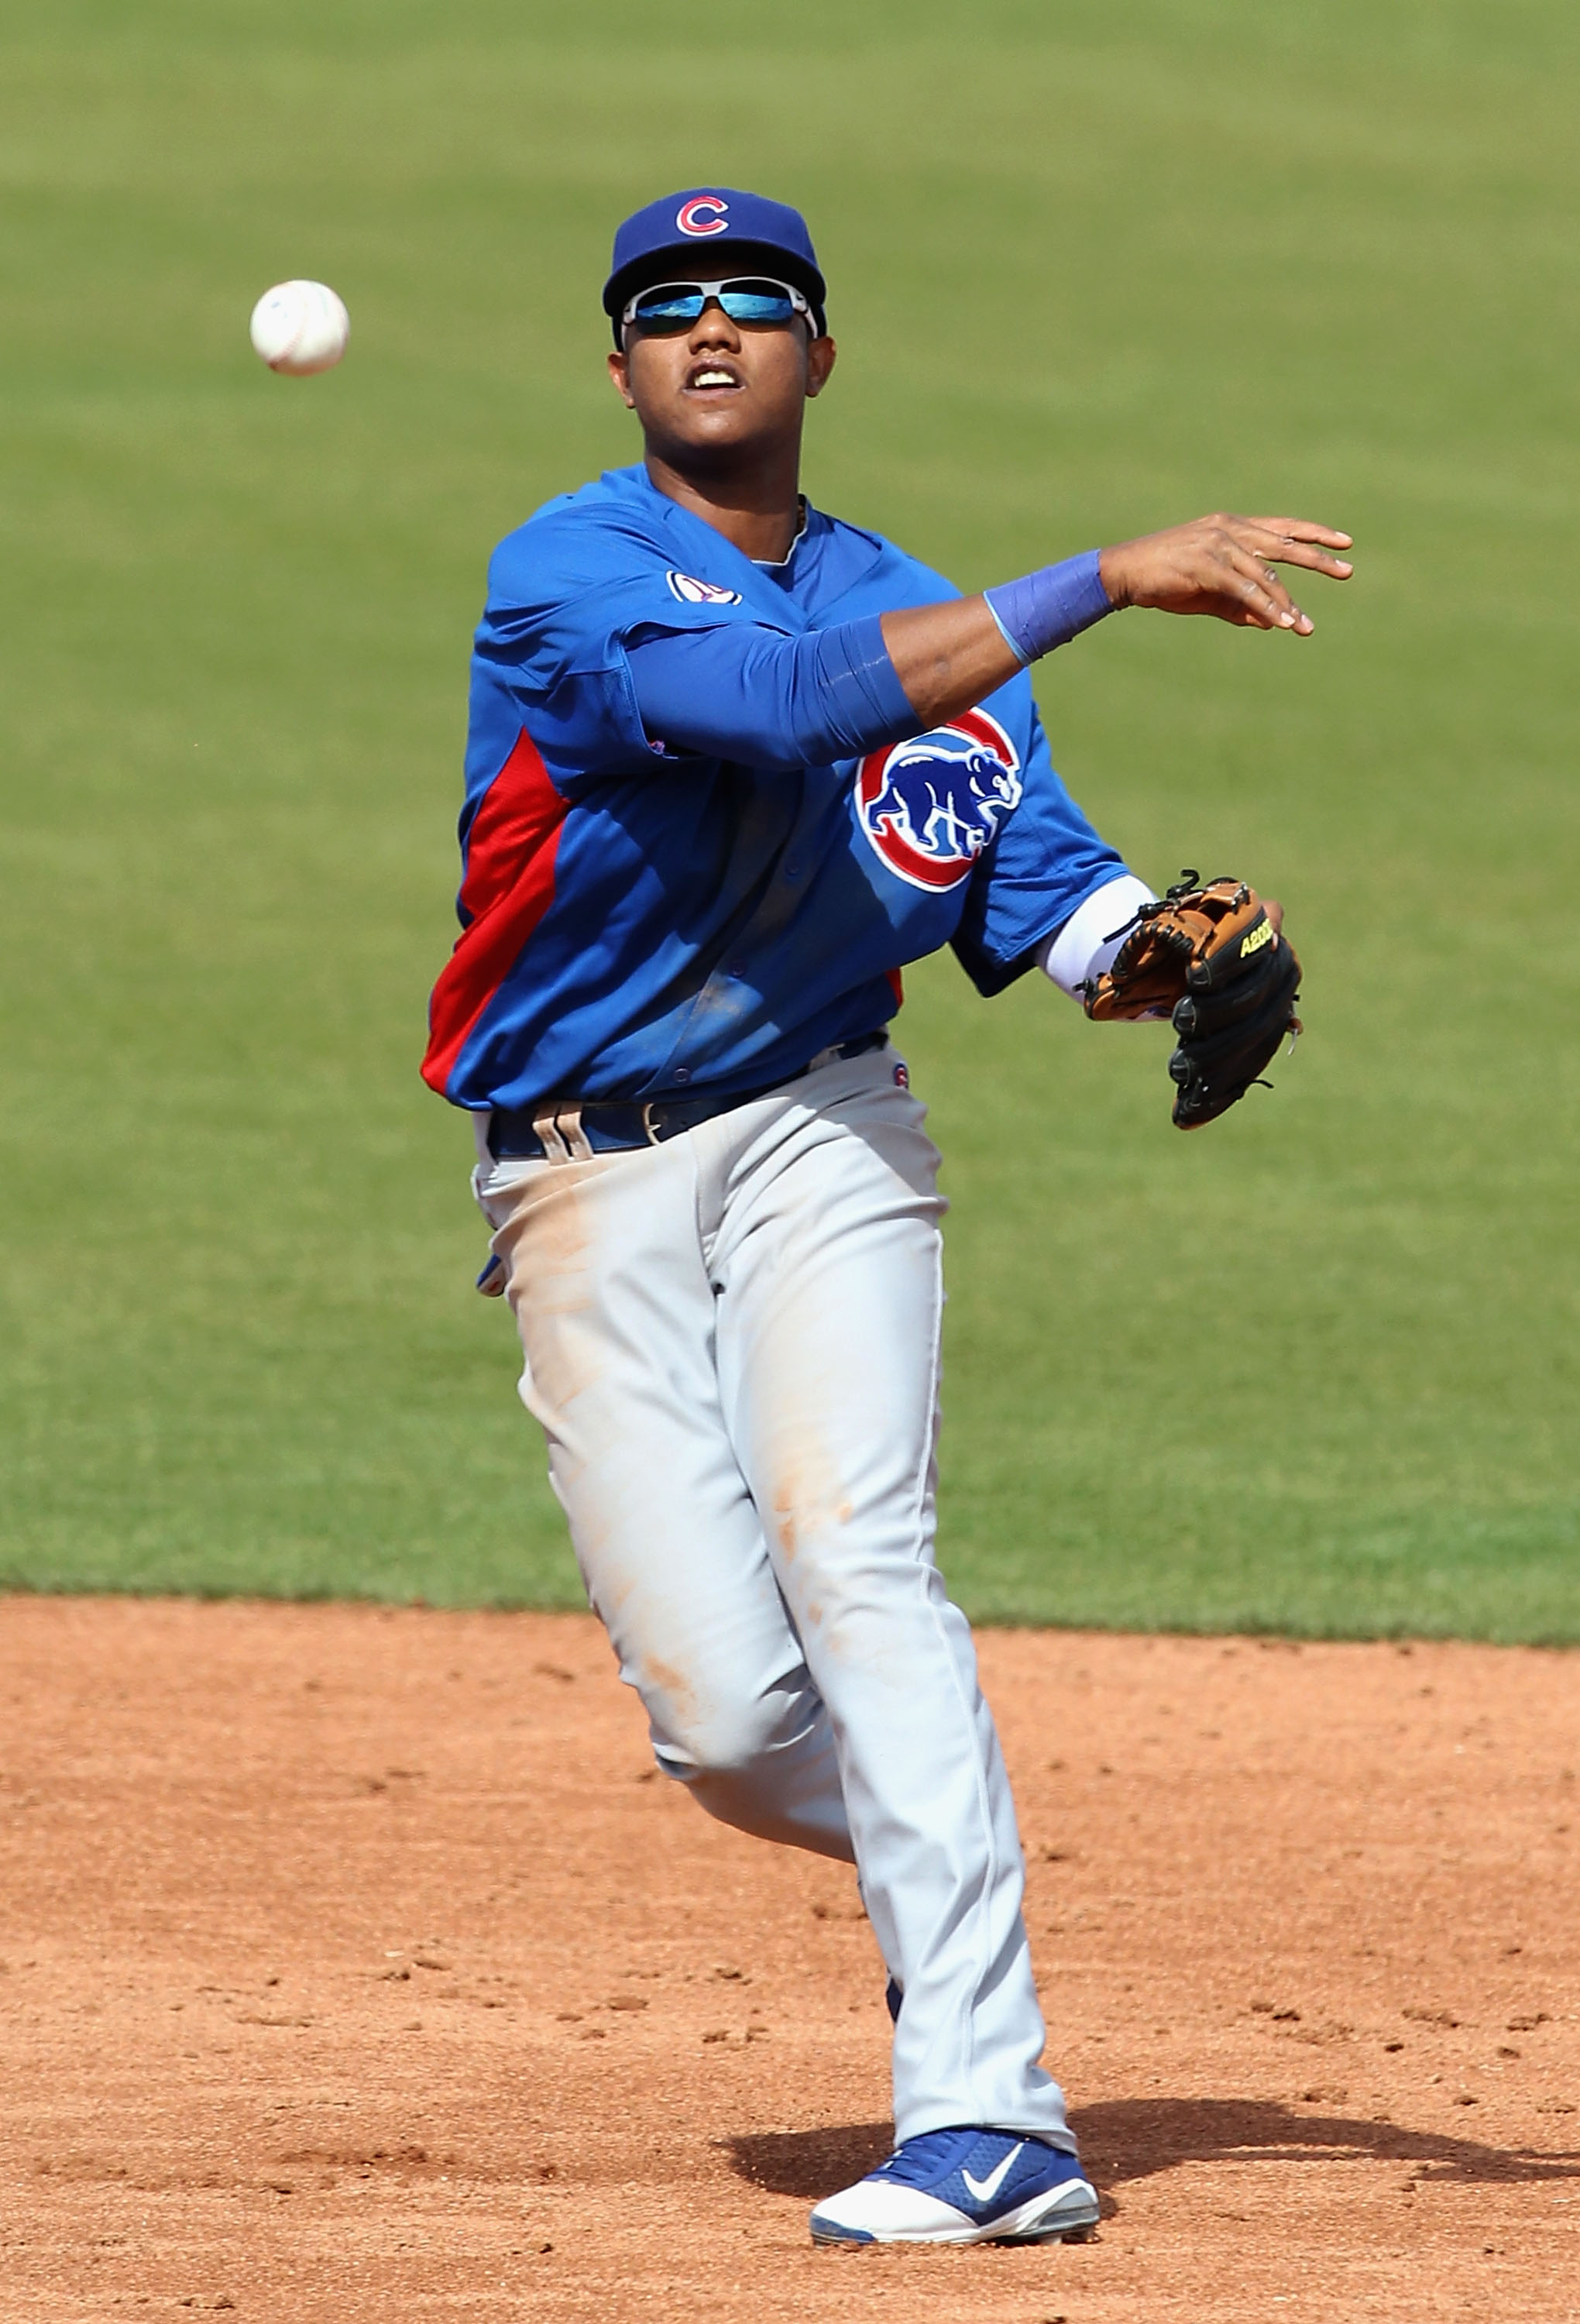 SCOTTSDALE, AZ - MARCH 01:  Infielder Starlin Castro #13 of the Chicago Cubs throws to first base attempting to turn a double play during the spring training game against the San Francisco Giants at Scottsdale Stadium on March 1, 2011 in Scottsdale, Arizo